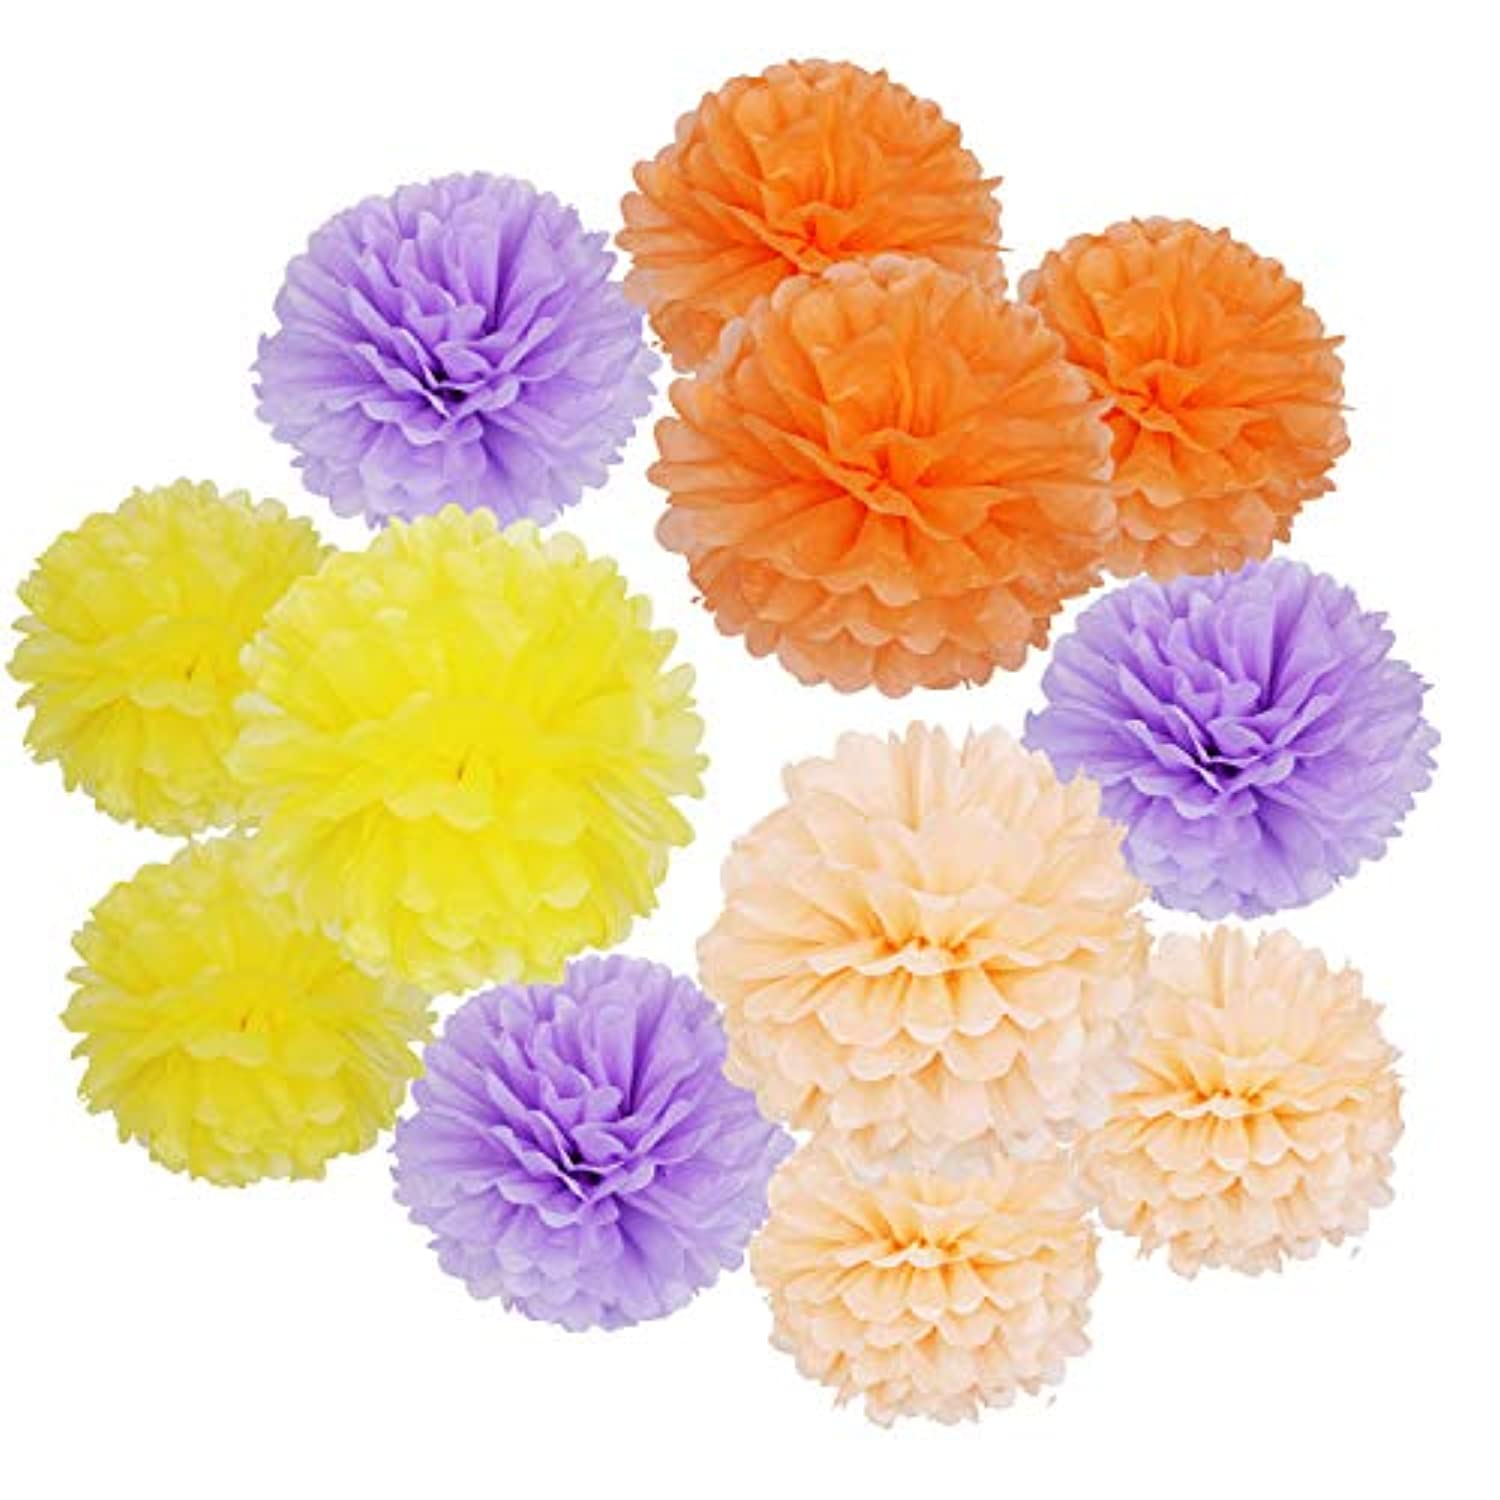 Landisun Party Tissue Paper Flowers Pom Poms Birthday/Wedding/Baby Shower/Bachelorette Decoration Flowers of 10 inches(12pcs). (4 Colors)